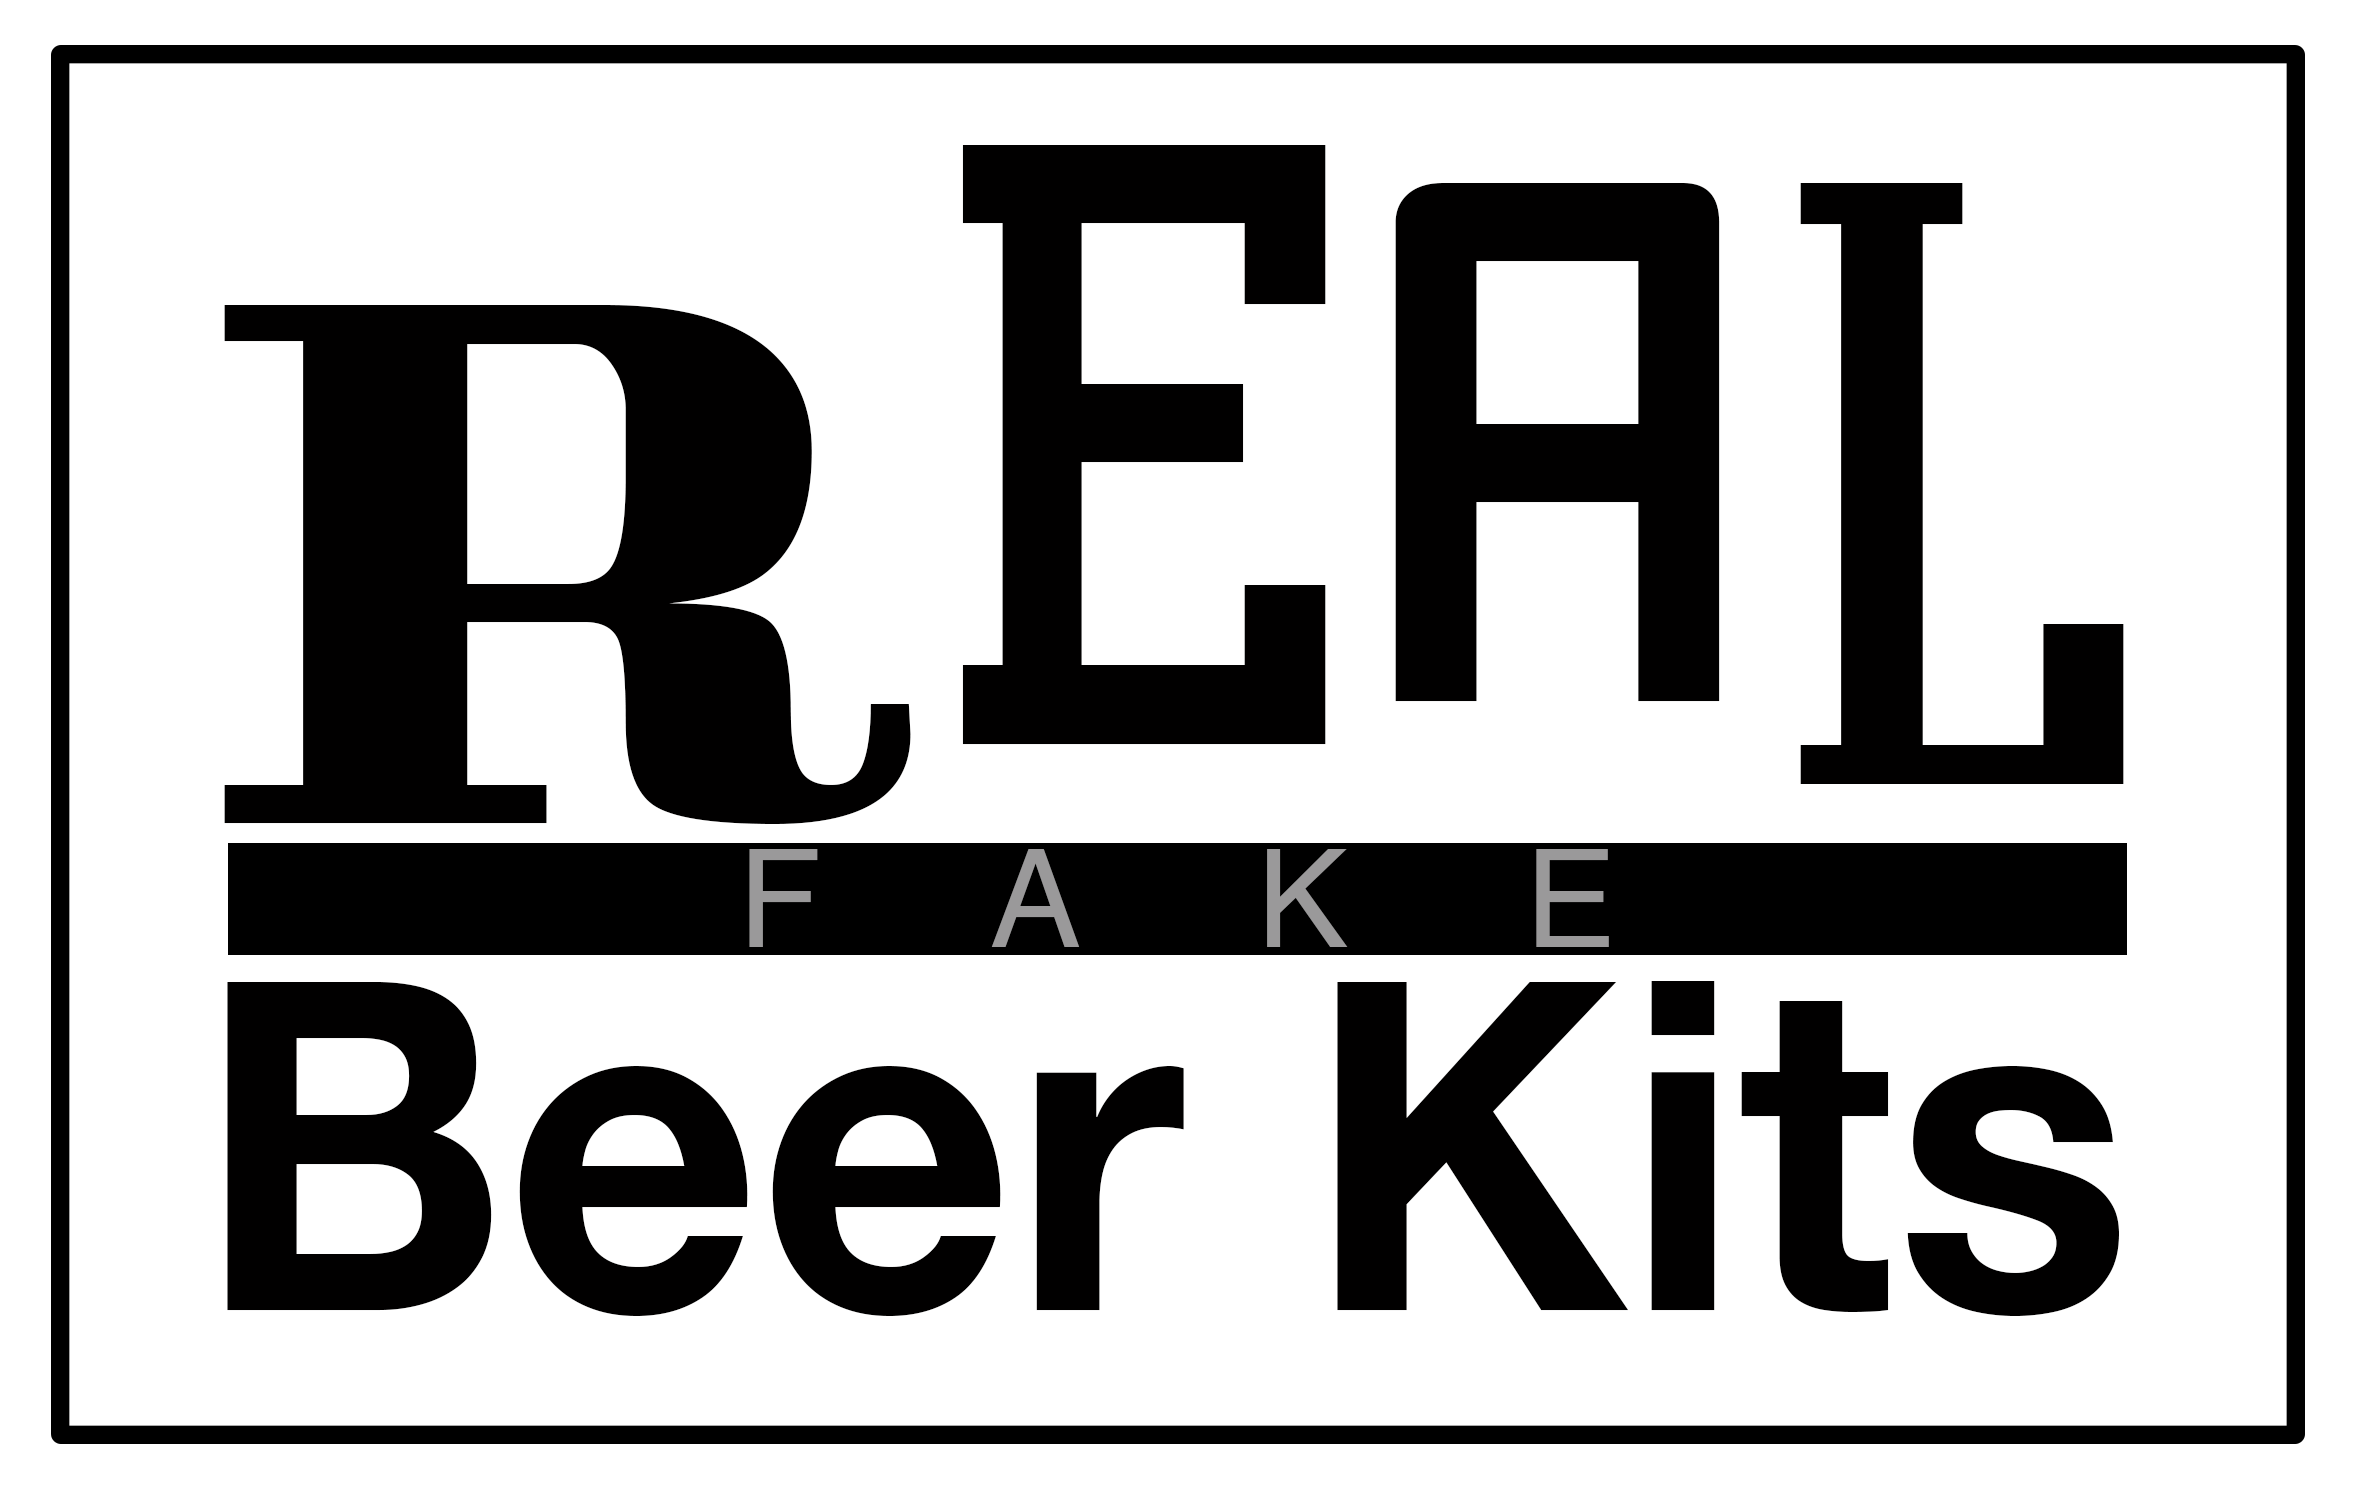 real-fake-beer-kits-logo-v2.png